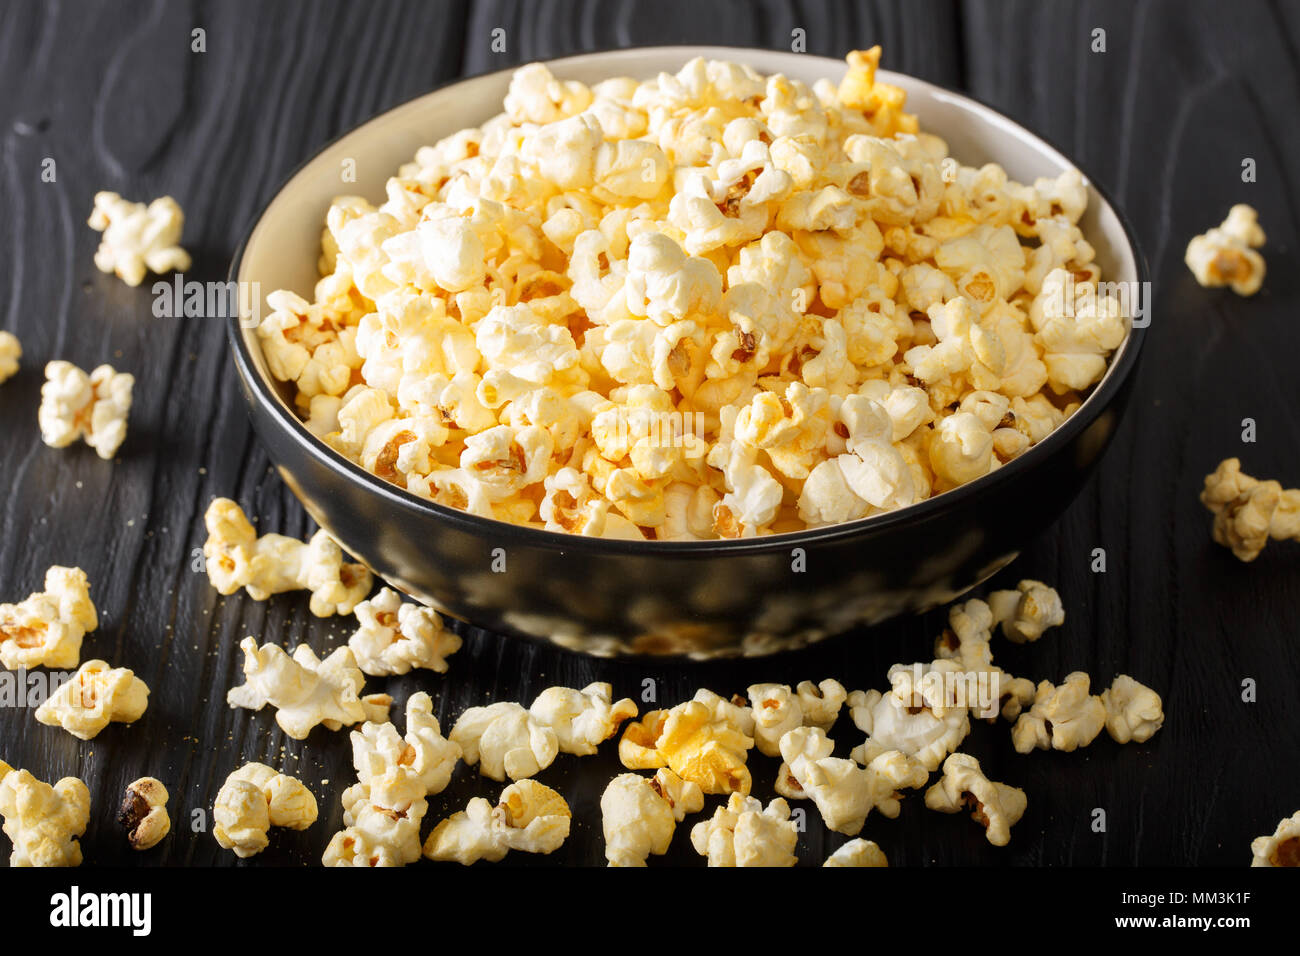 Cheddar cheese salted popcorn closeup in a  bowl on black table. vertical - Stock Image